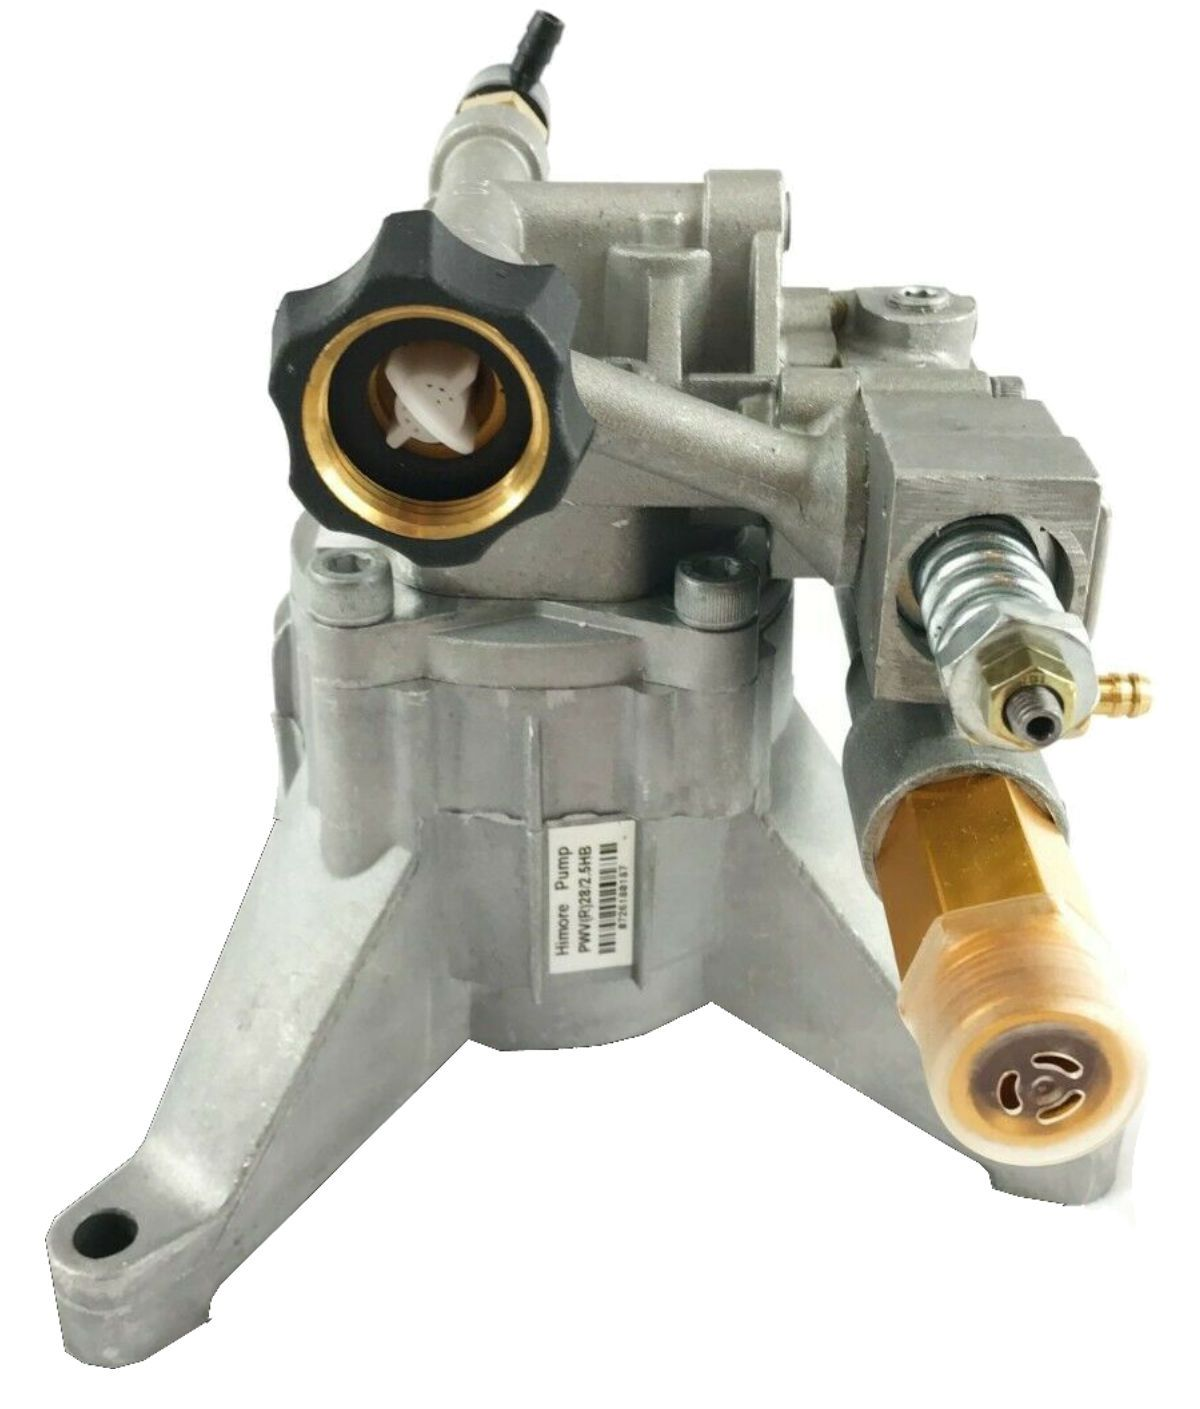 2700 PSI PRESSURE WASHER WATER PUMP Briggs & Stratton 020273-0 020273-1 - AE-Power